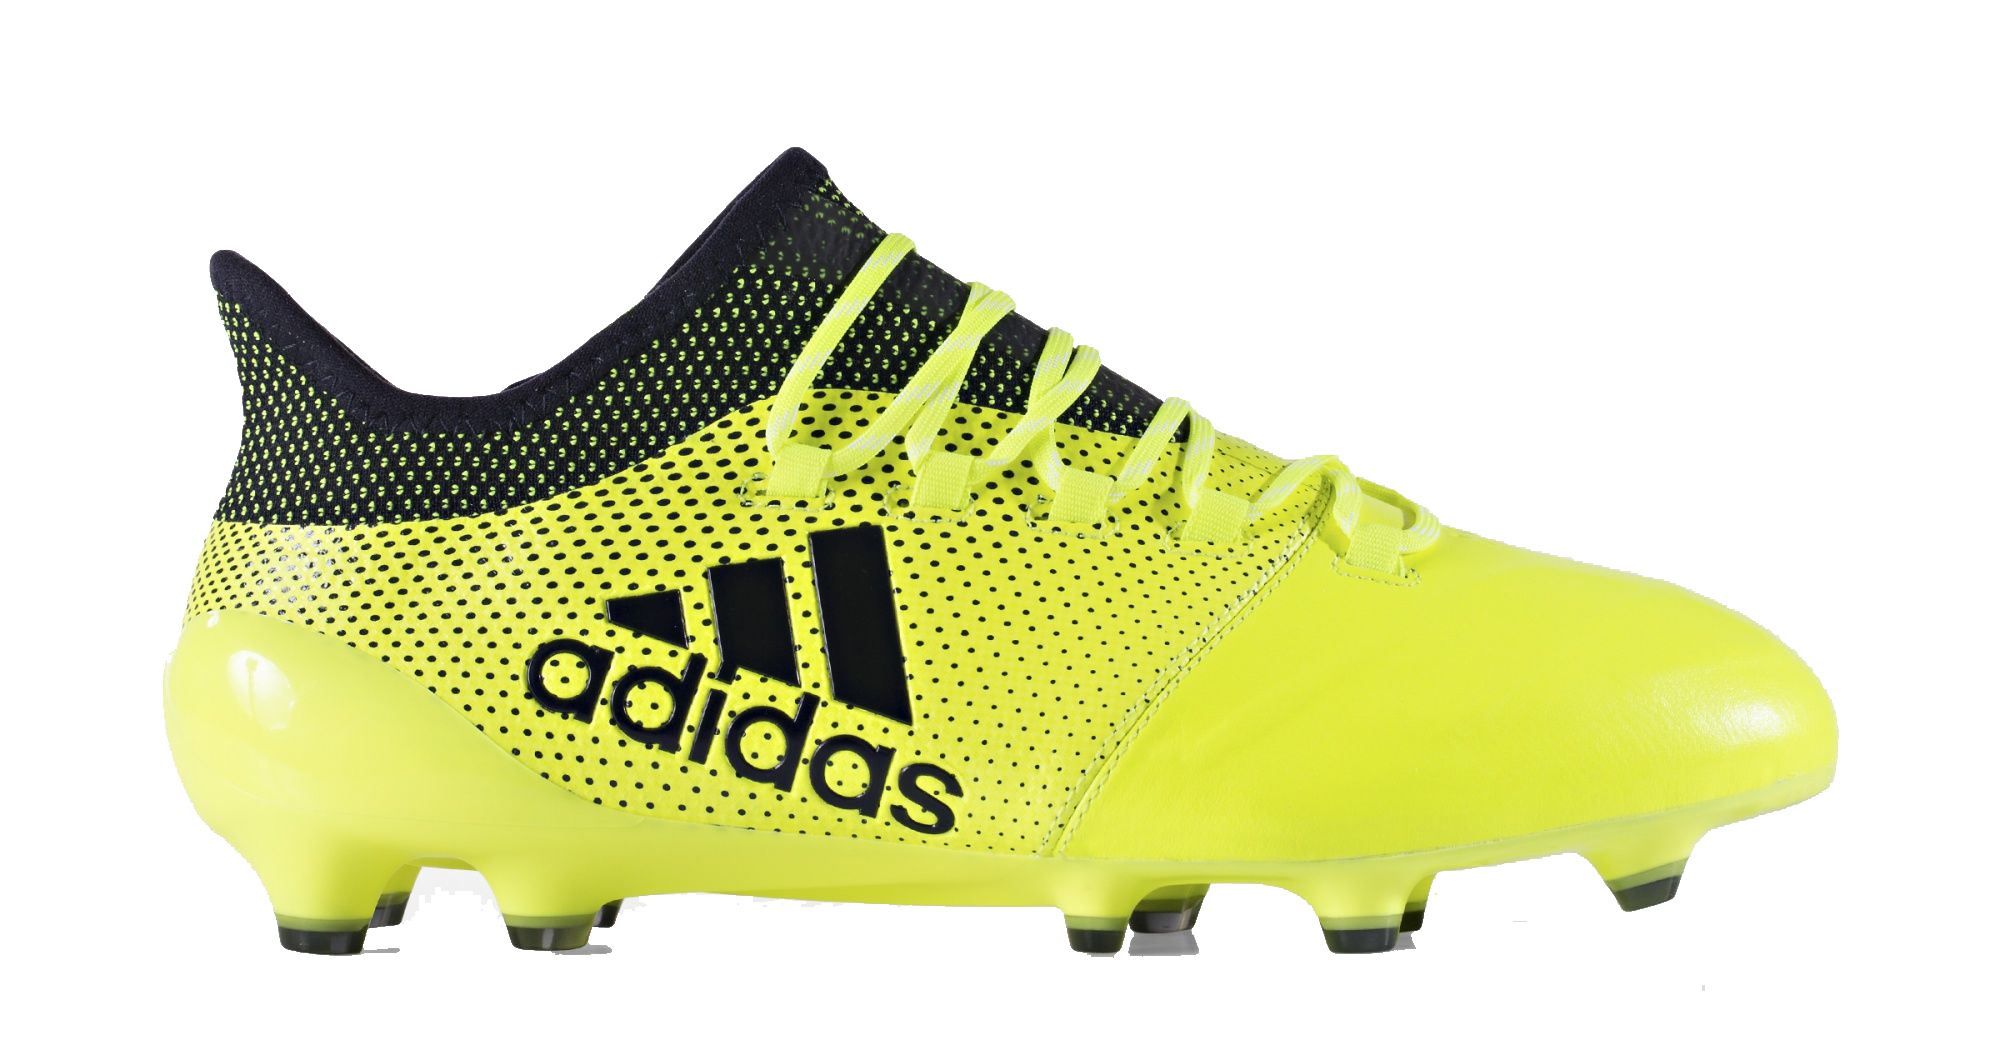 100% authentic c3a79 525be MN Sport - Buty Adidas X 17.1 FG LEATHER S82306 - Sklep ...